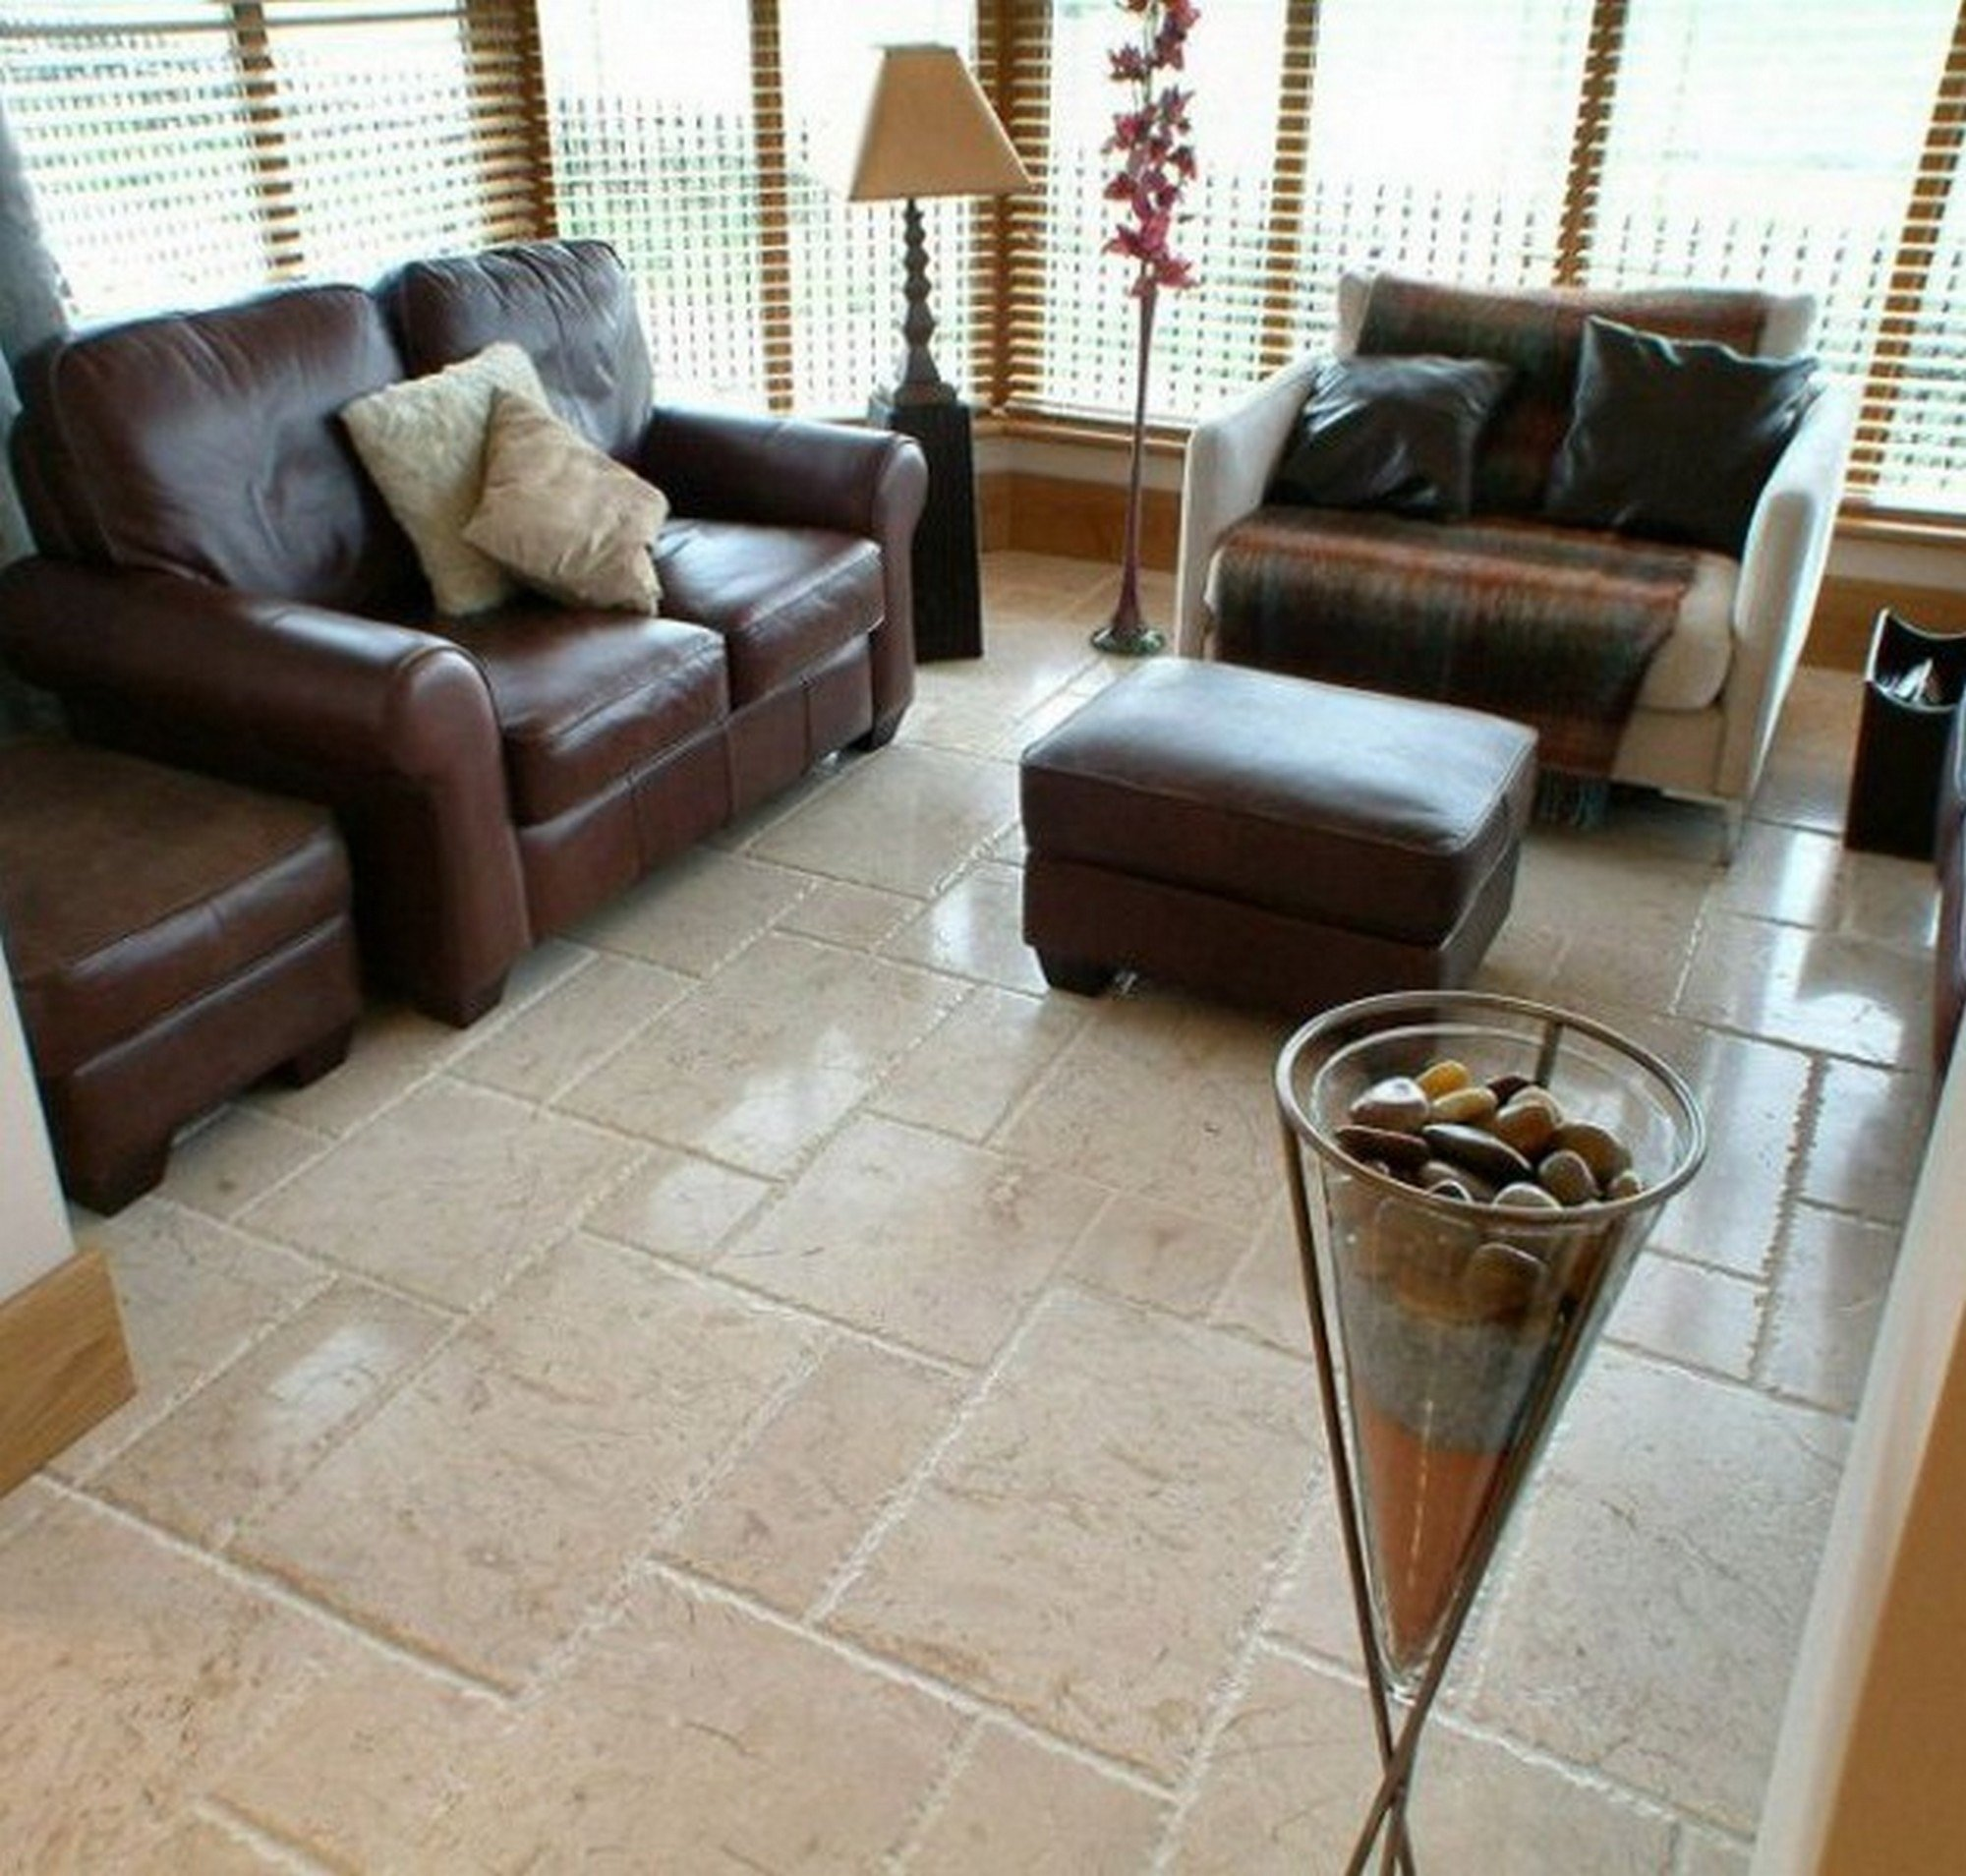 10 Famous Living Room Tile Floor Ideas floor ideas for living room on living room with tile flooring ideas 2020